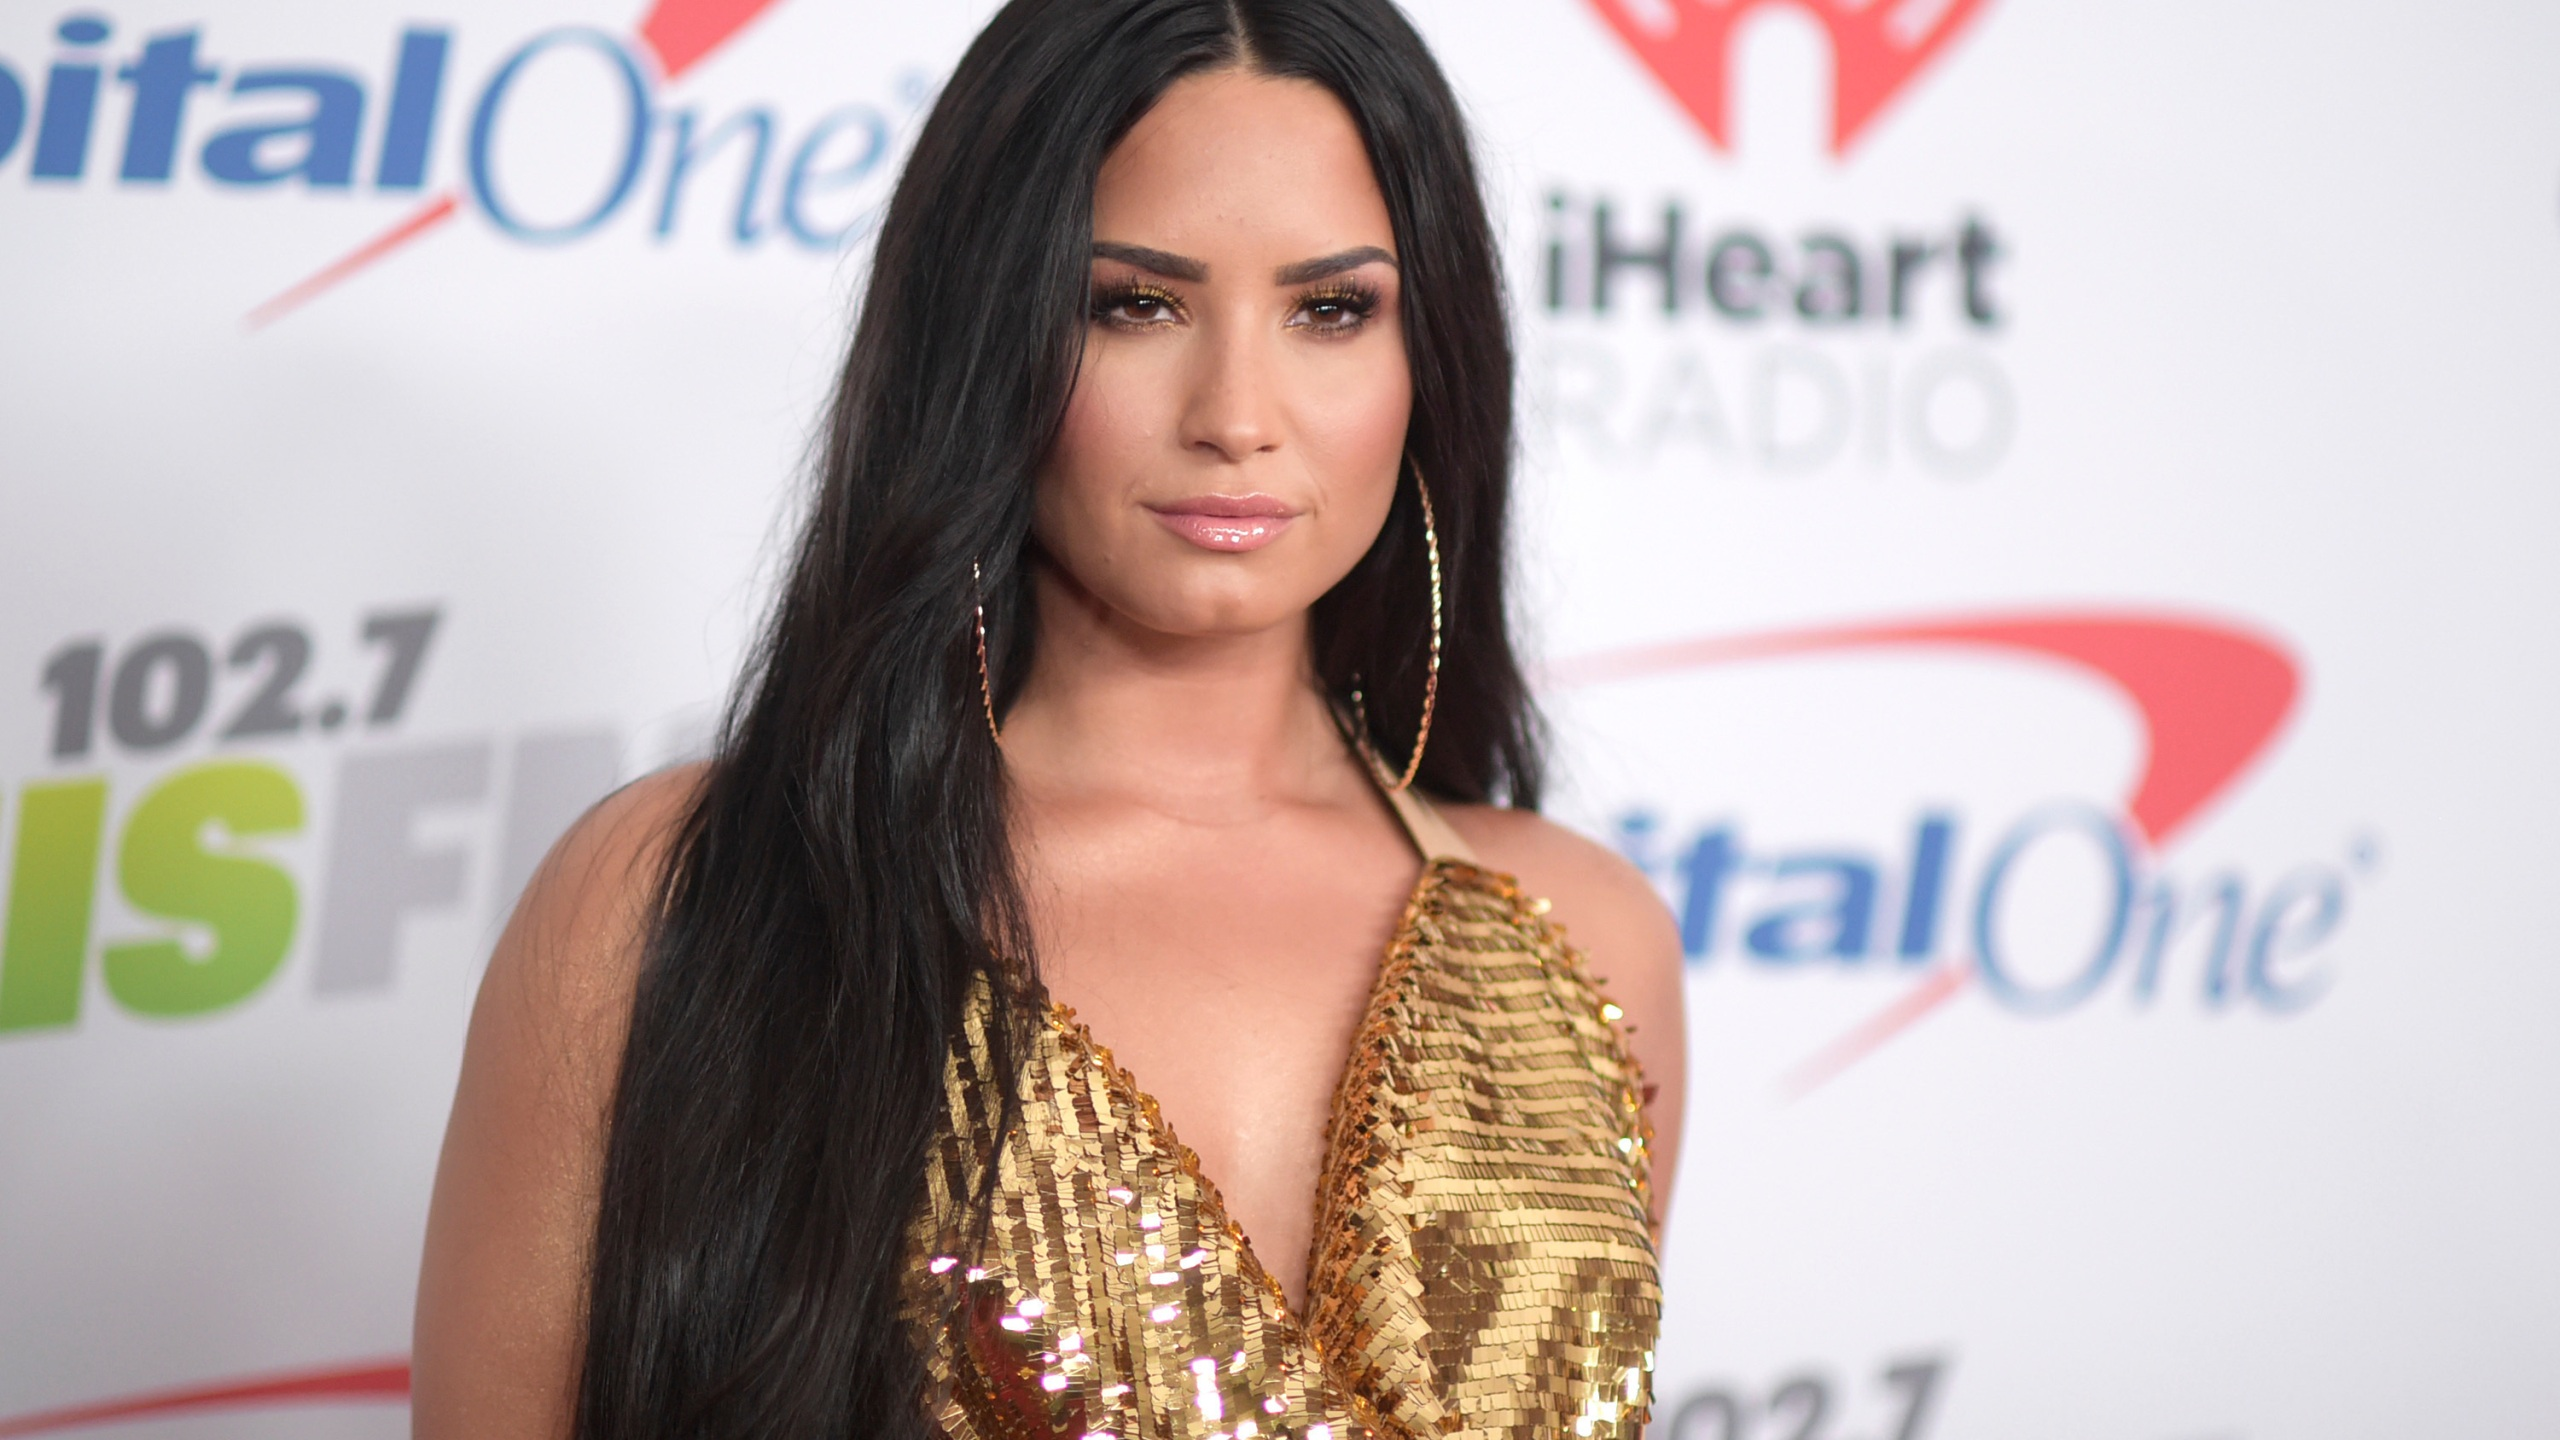 People_Demi_Lovato_16965-159532.jpg51832216